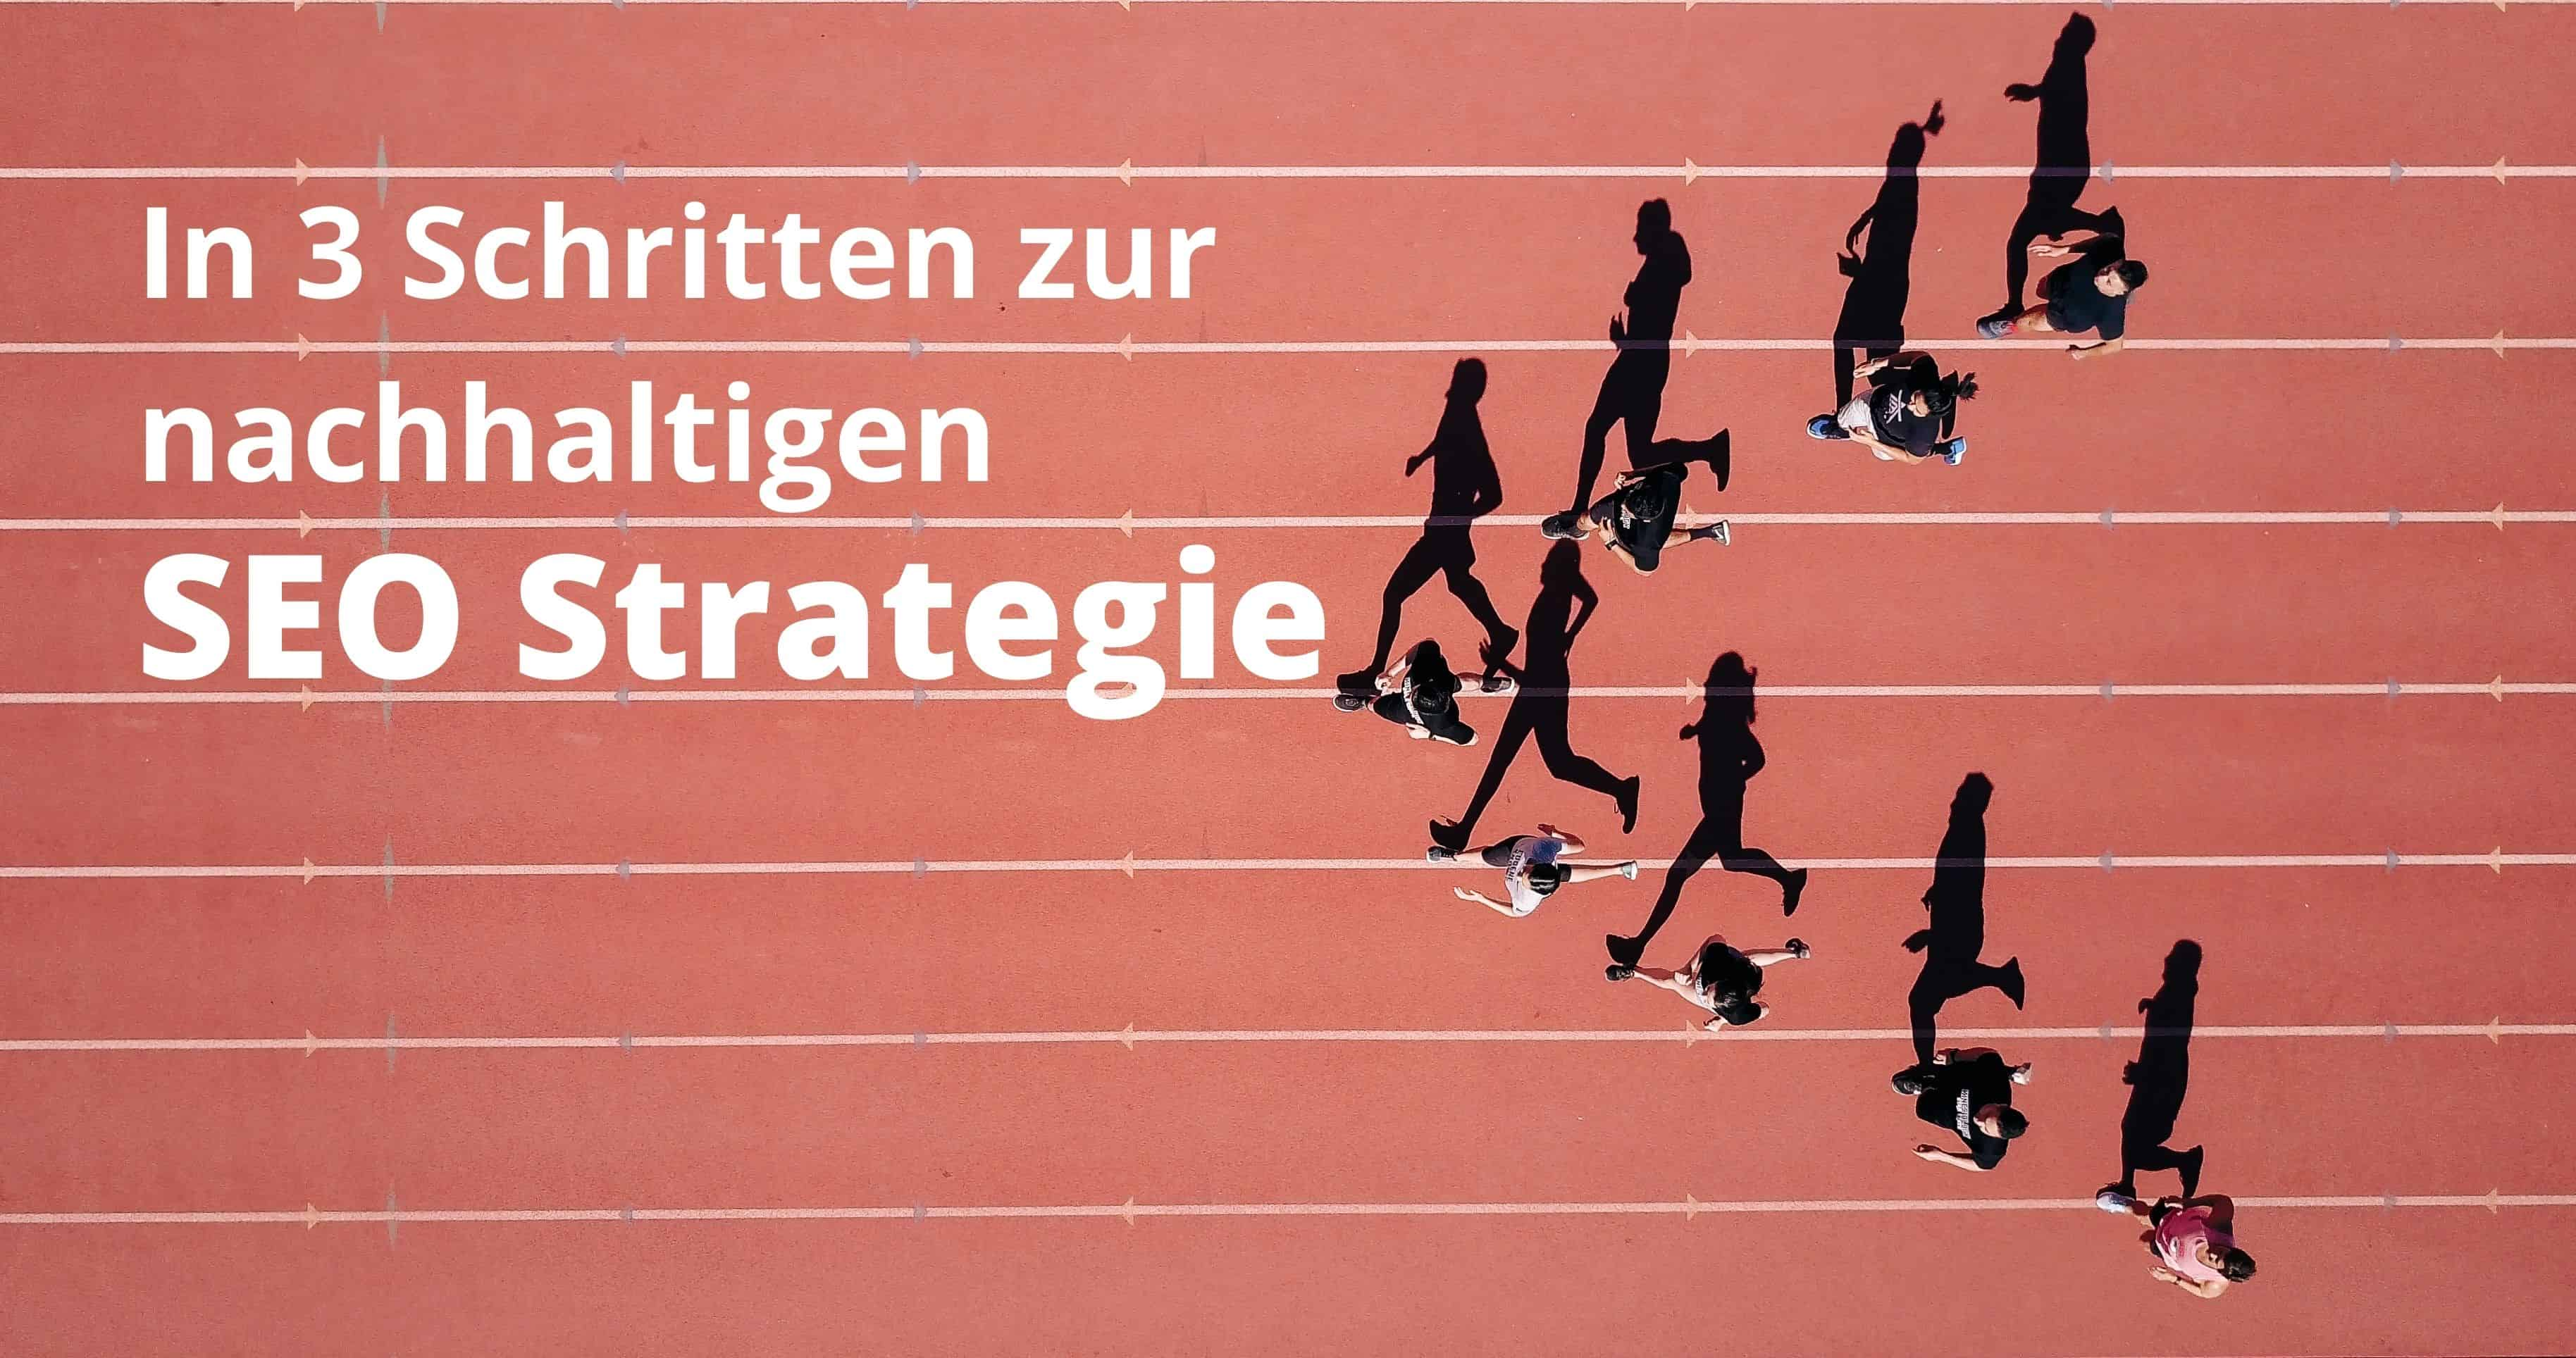 SEO Strategie Titelbild